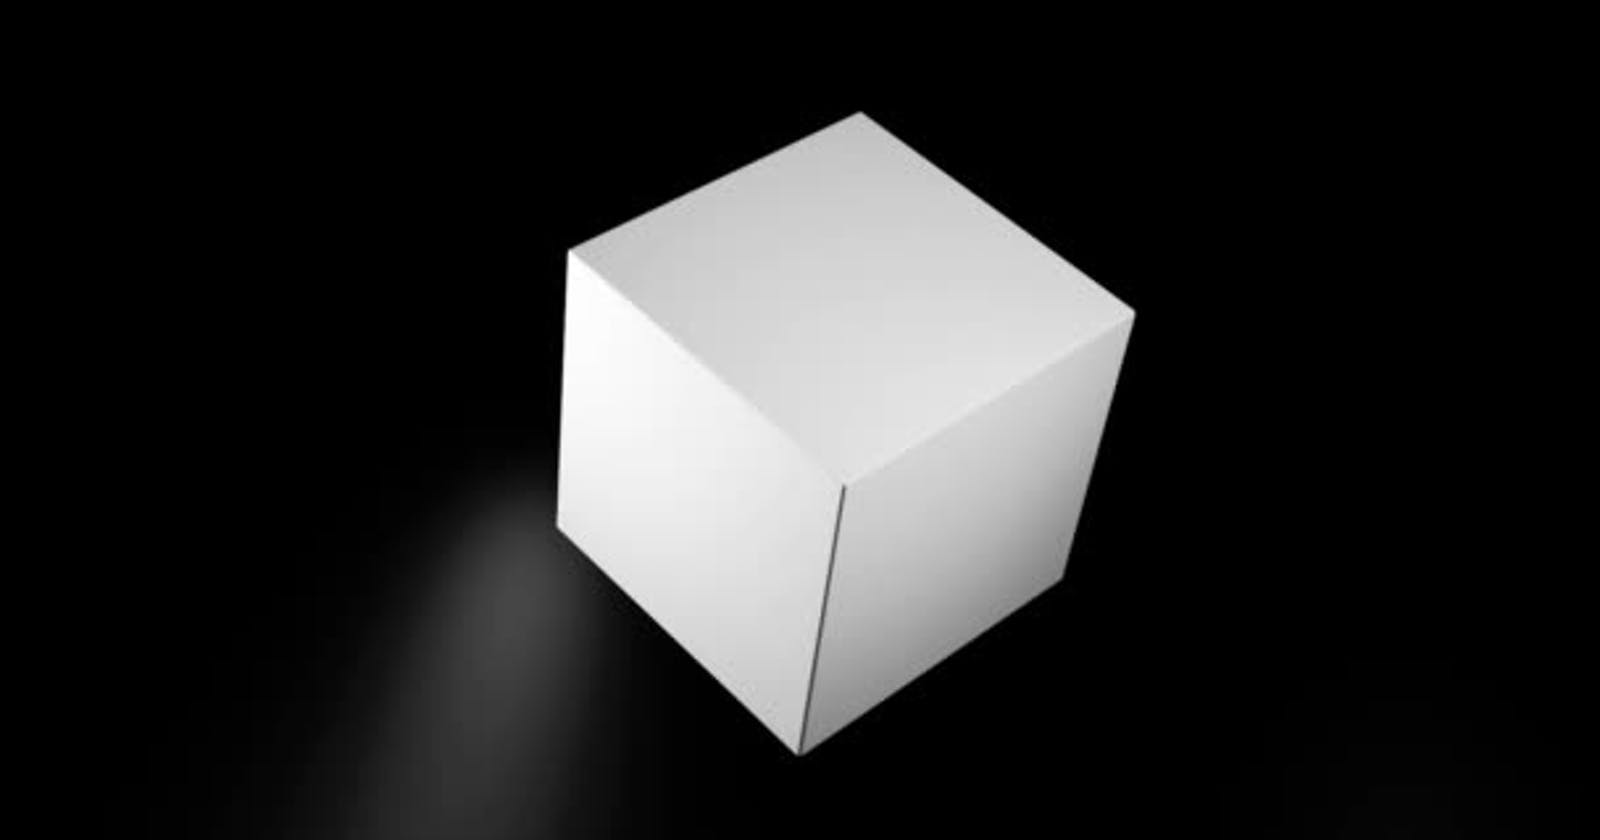 (Very) Basic Intro To White-Box Cryptography